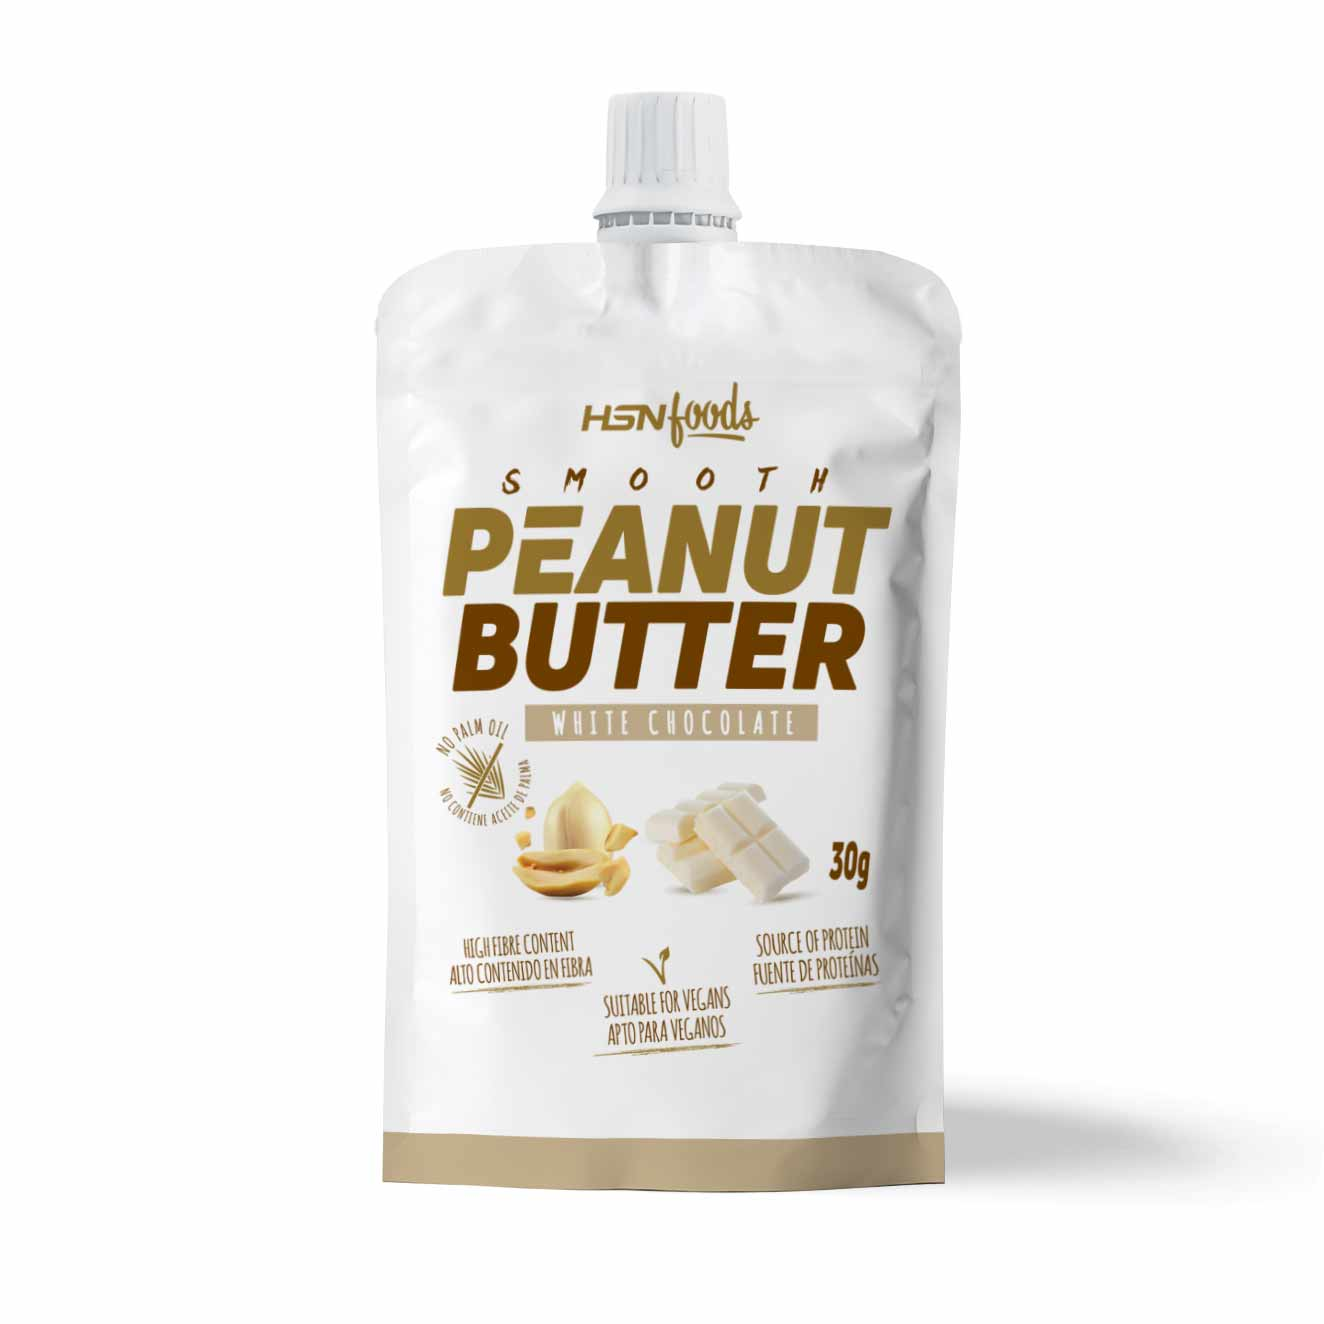 SMOOTH PEANUT BUTTER SAMPLE 30g WHITE CHOCOLATE